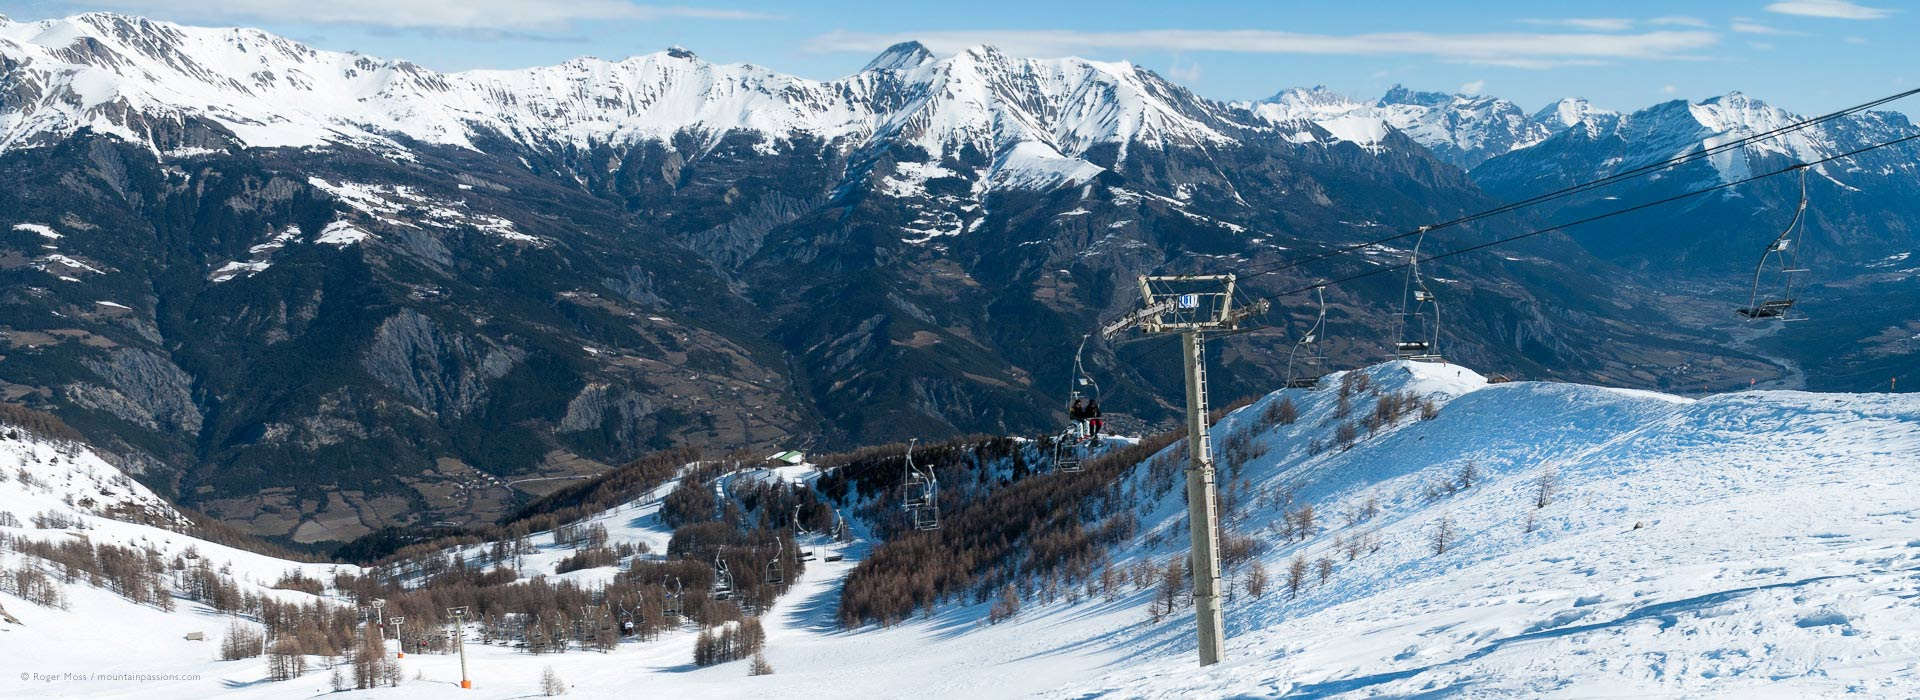 High, wide view of ski lift on mountainside with surrounding valleys at Pra Loup